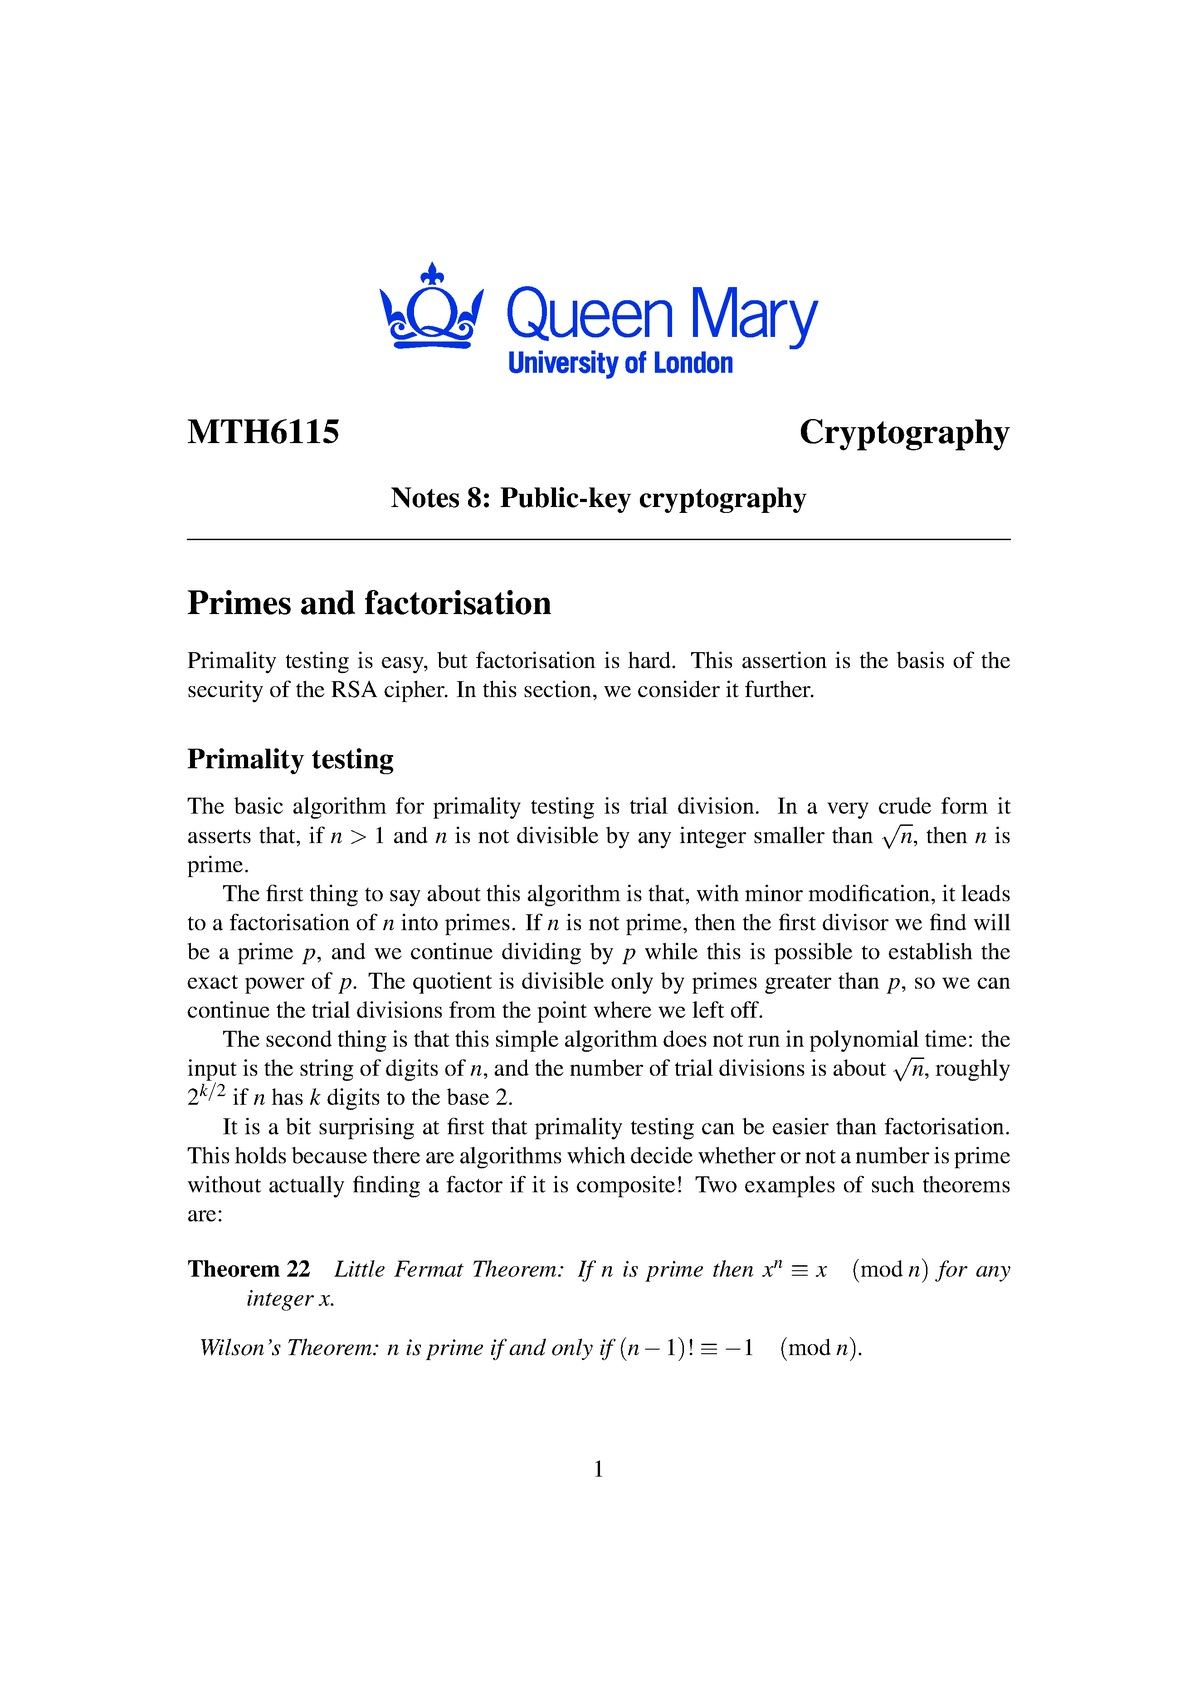 MTH6115 2012-2013 Lecture Notes 8 - MTH6115: Cryptography